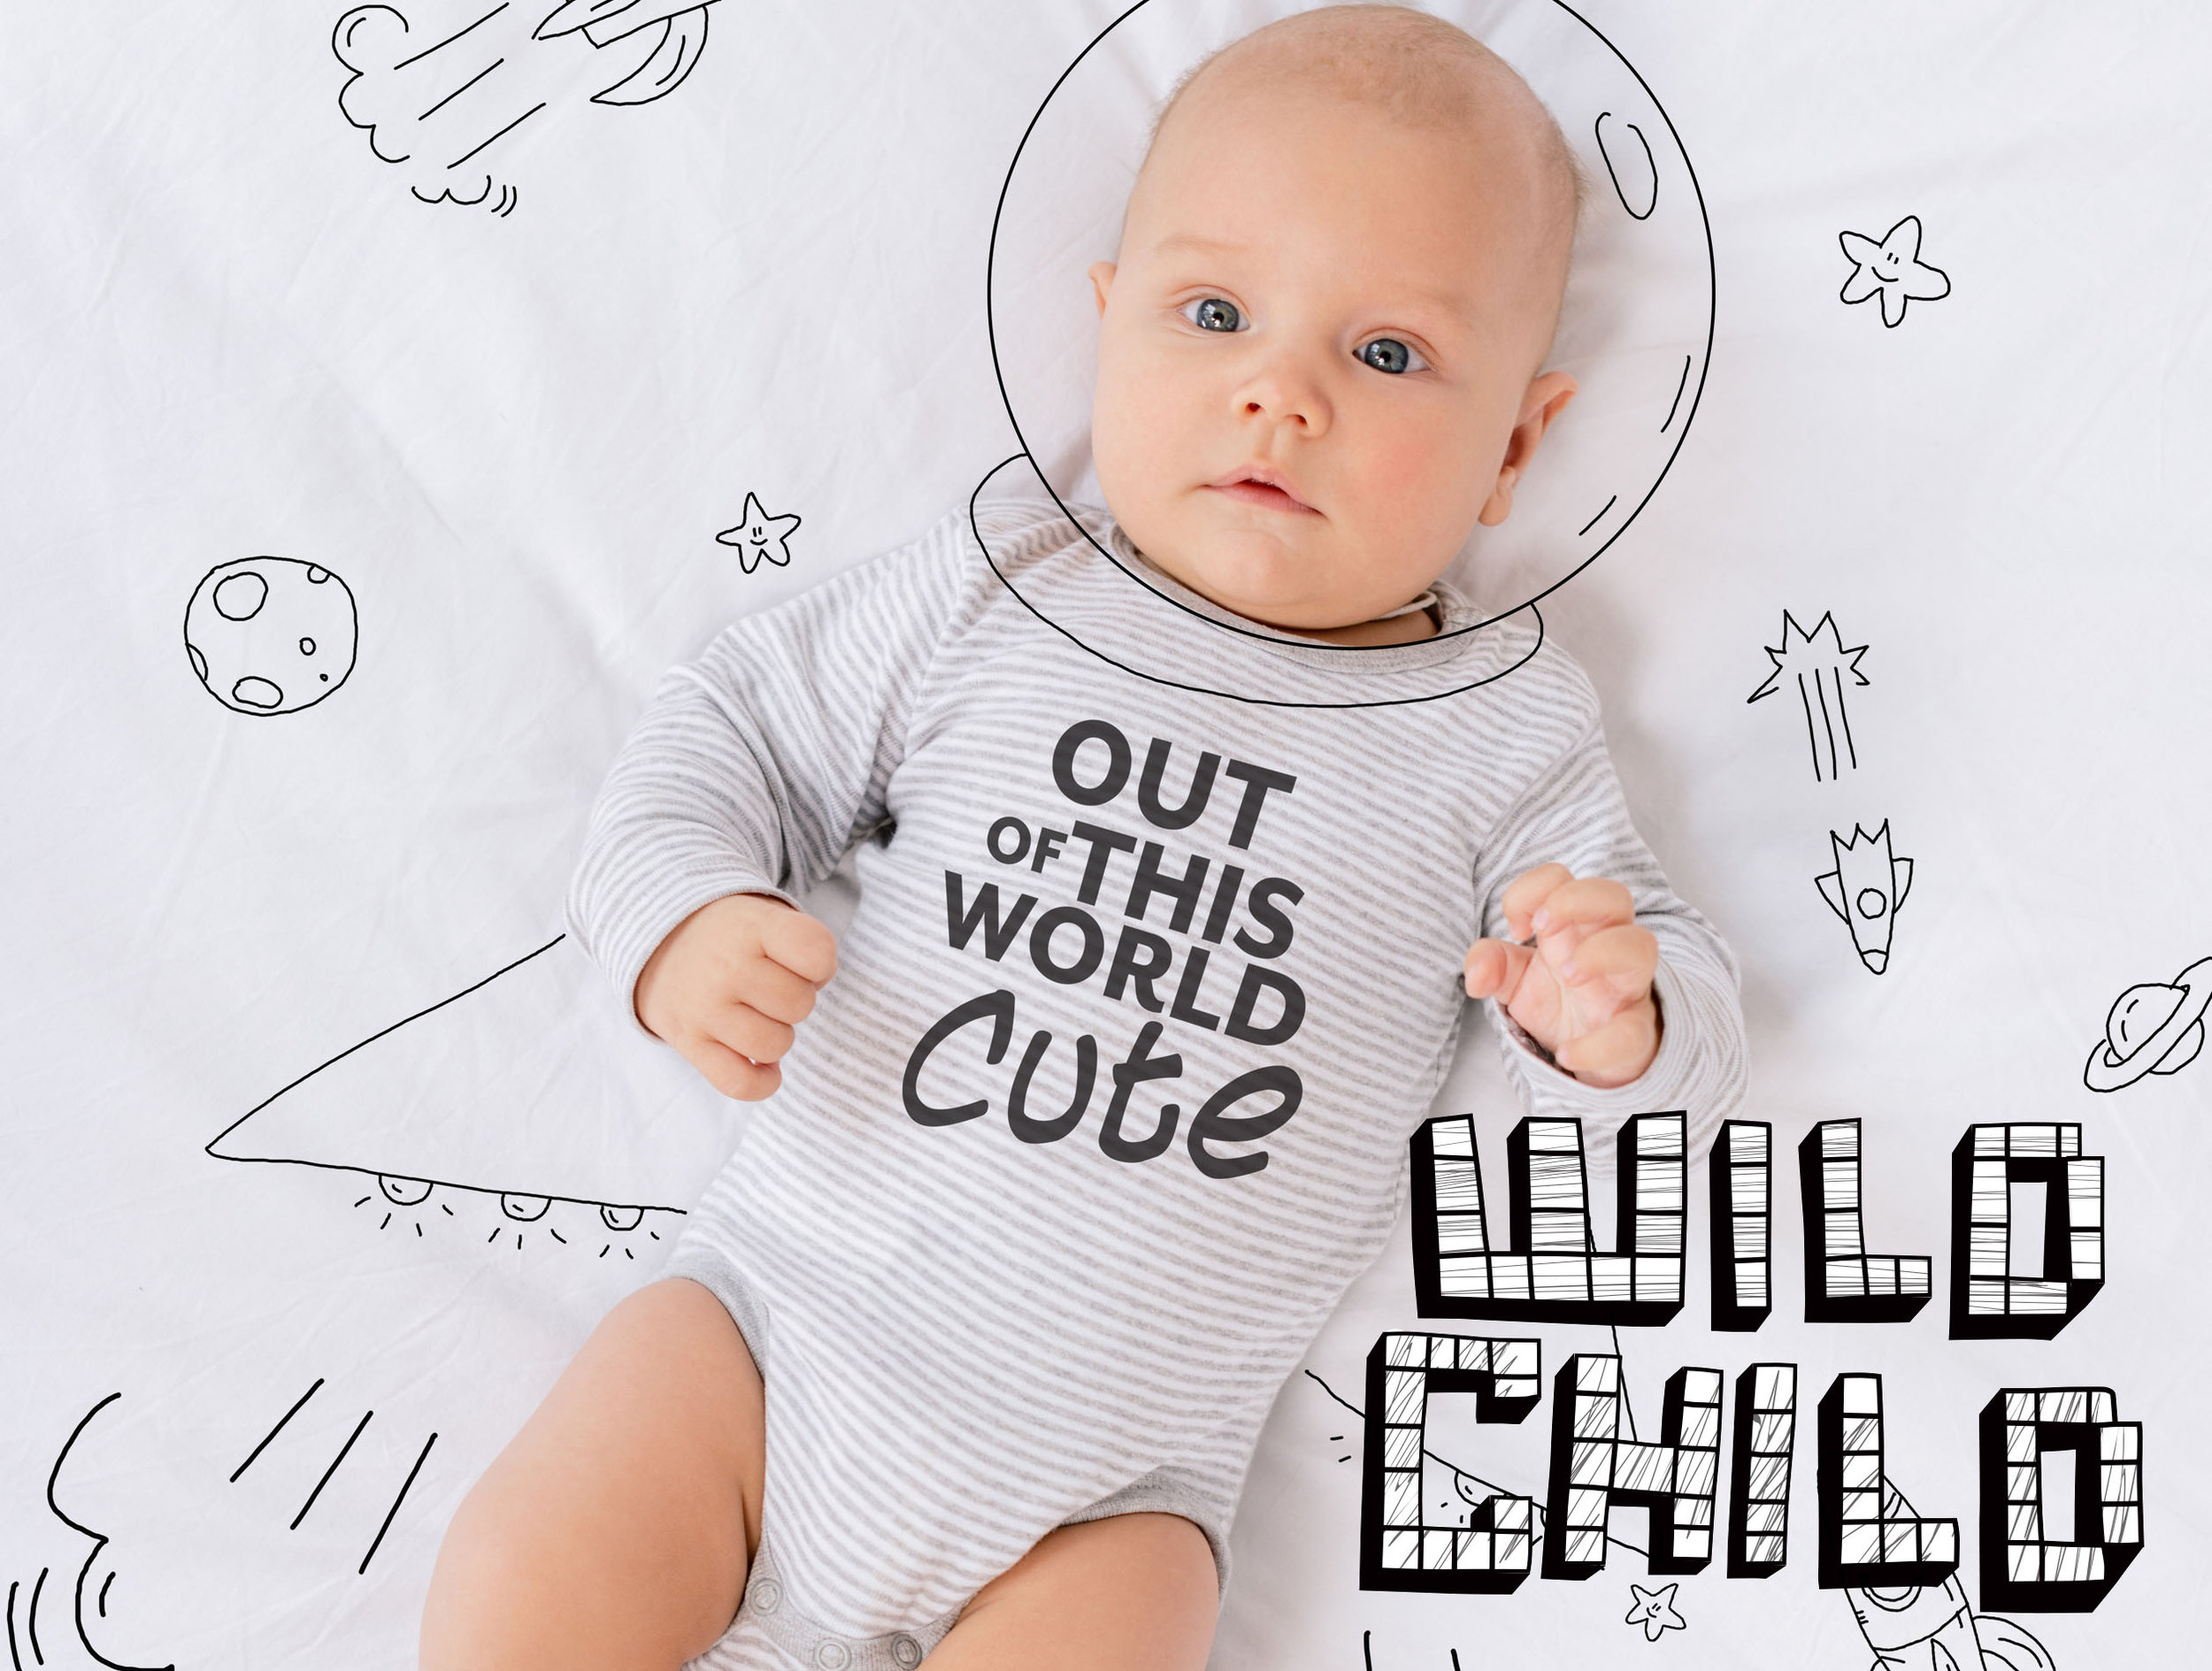 You can't take yourself too seriously when considering our Wildchild assortment of graphic tops, tees and bibs. Trendy, irreverent and often hilarious, they're the perfect choice for discerning babies everywhere!